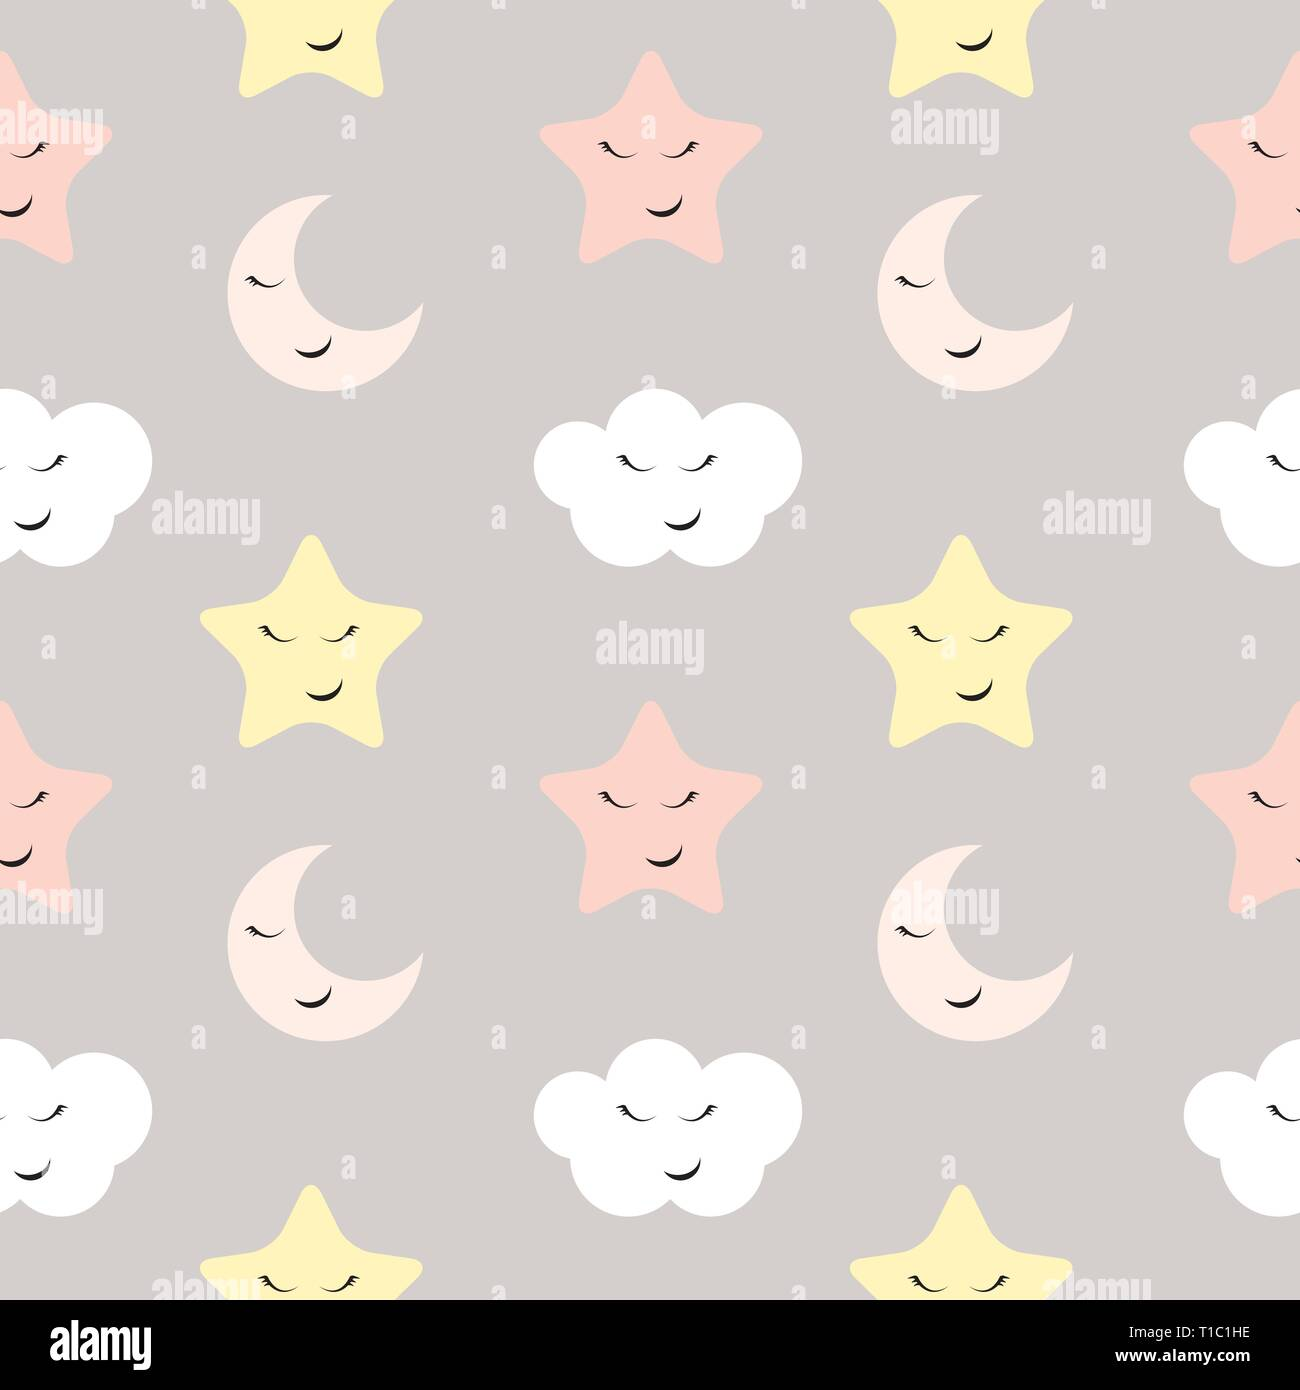 Cute Star, Cloud and Moon Seamless Pattern Background Vector